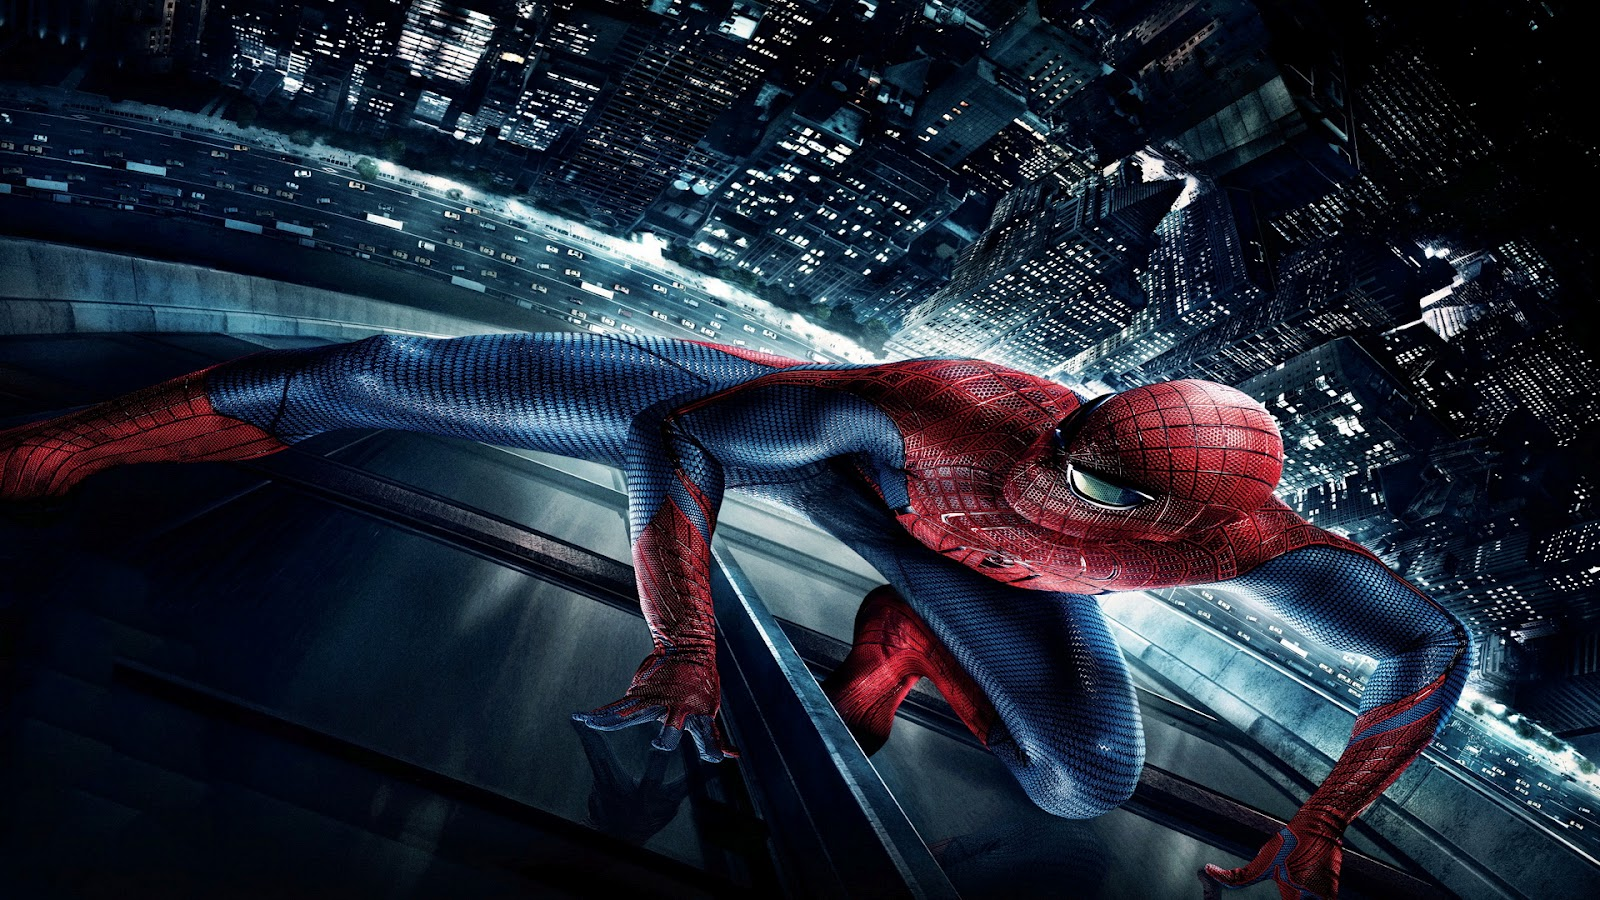 http://1.bp.blogspot.com/-XyPKgiD_7xs/UBC0IT-PWyI/AAAAAAAACCE/BuHgI7Gsfb4/s1600/new-Spider-Man-Wallpaper-the-amazing-spider-man-2012.jpg